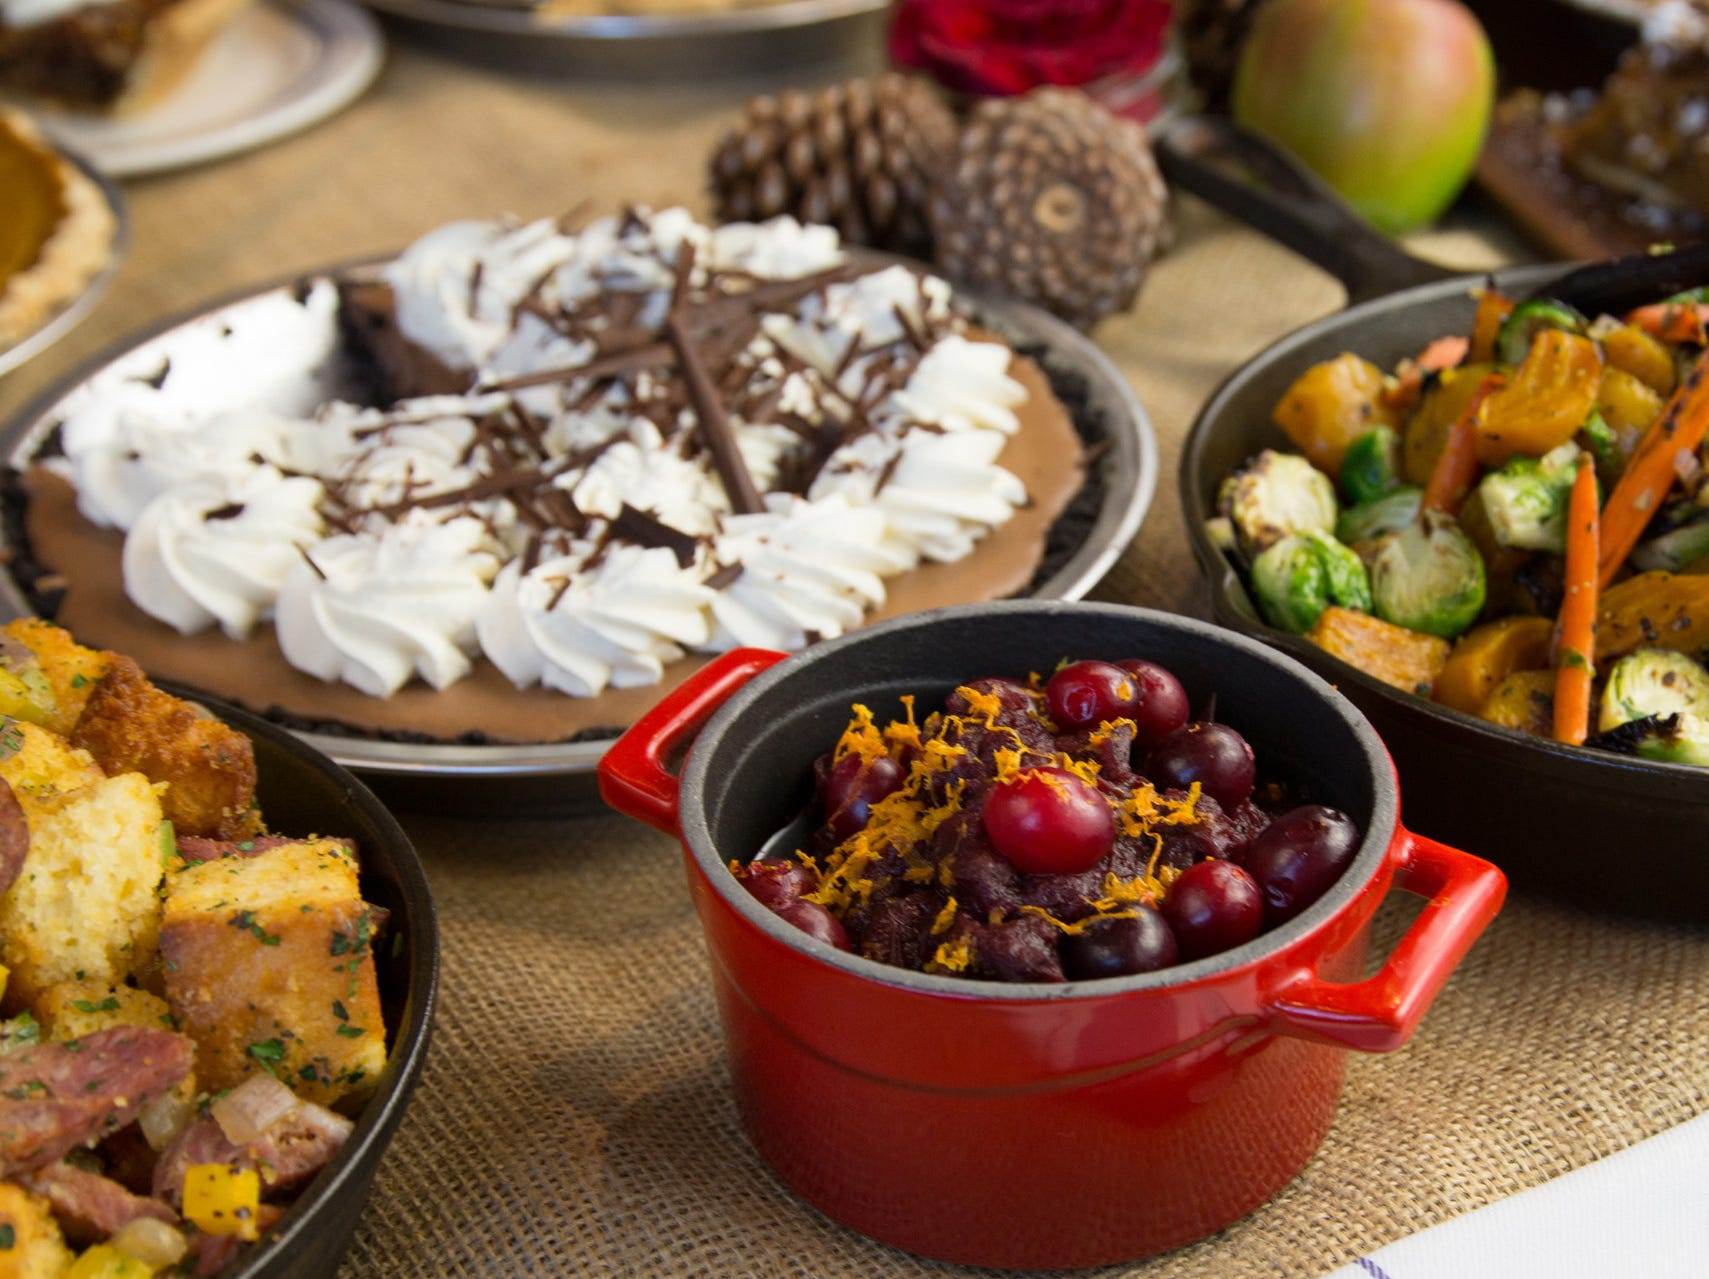 A variety of holiday dishes offered at restaurants at Four Seasons Resort Scottsdale at Troon North